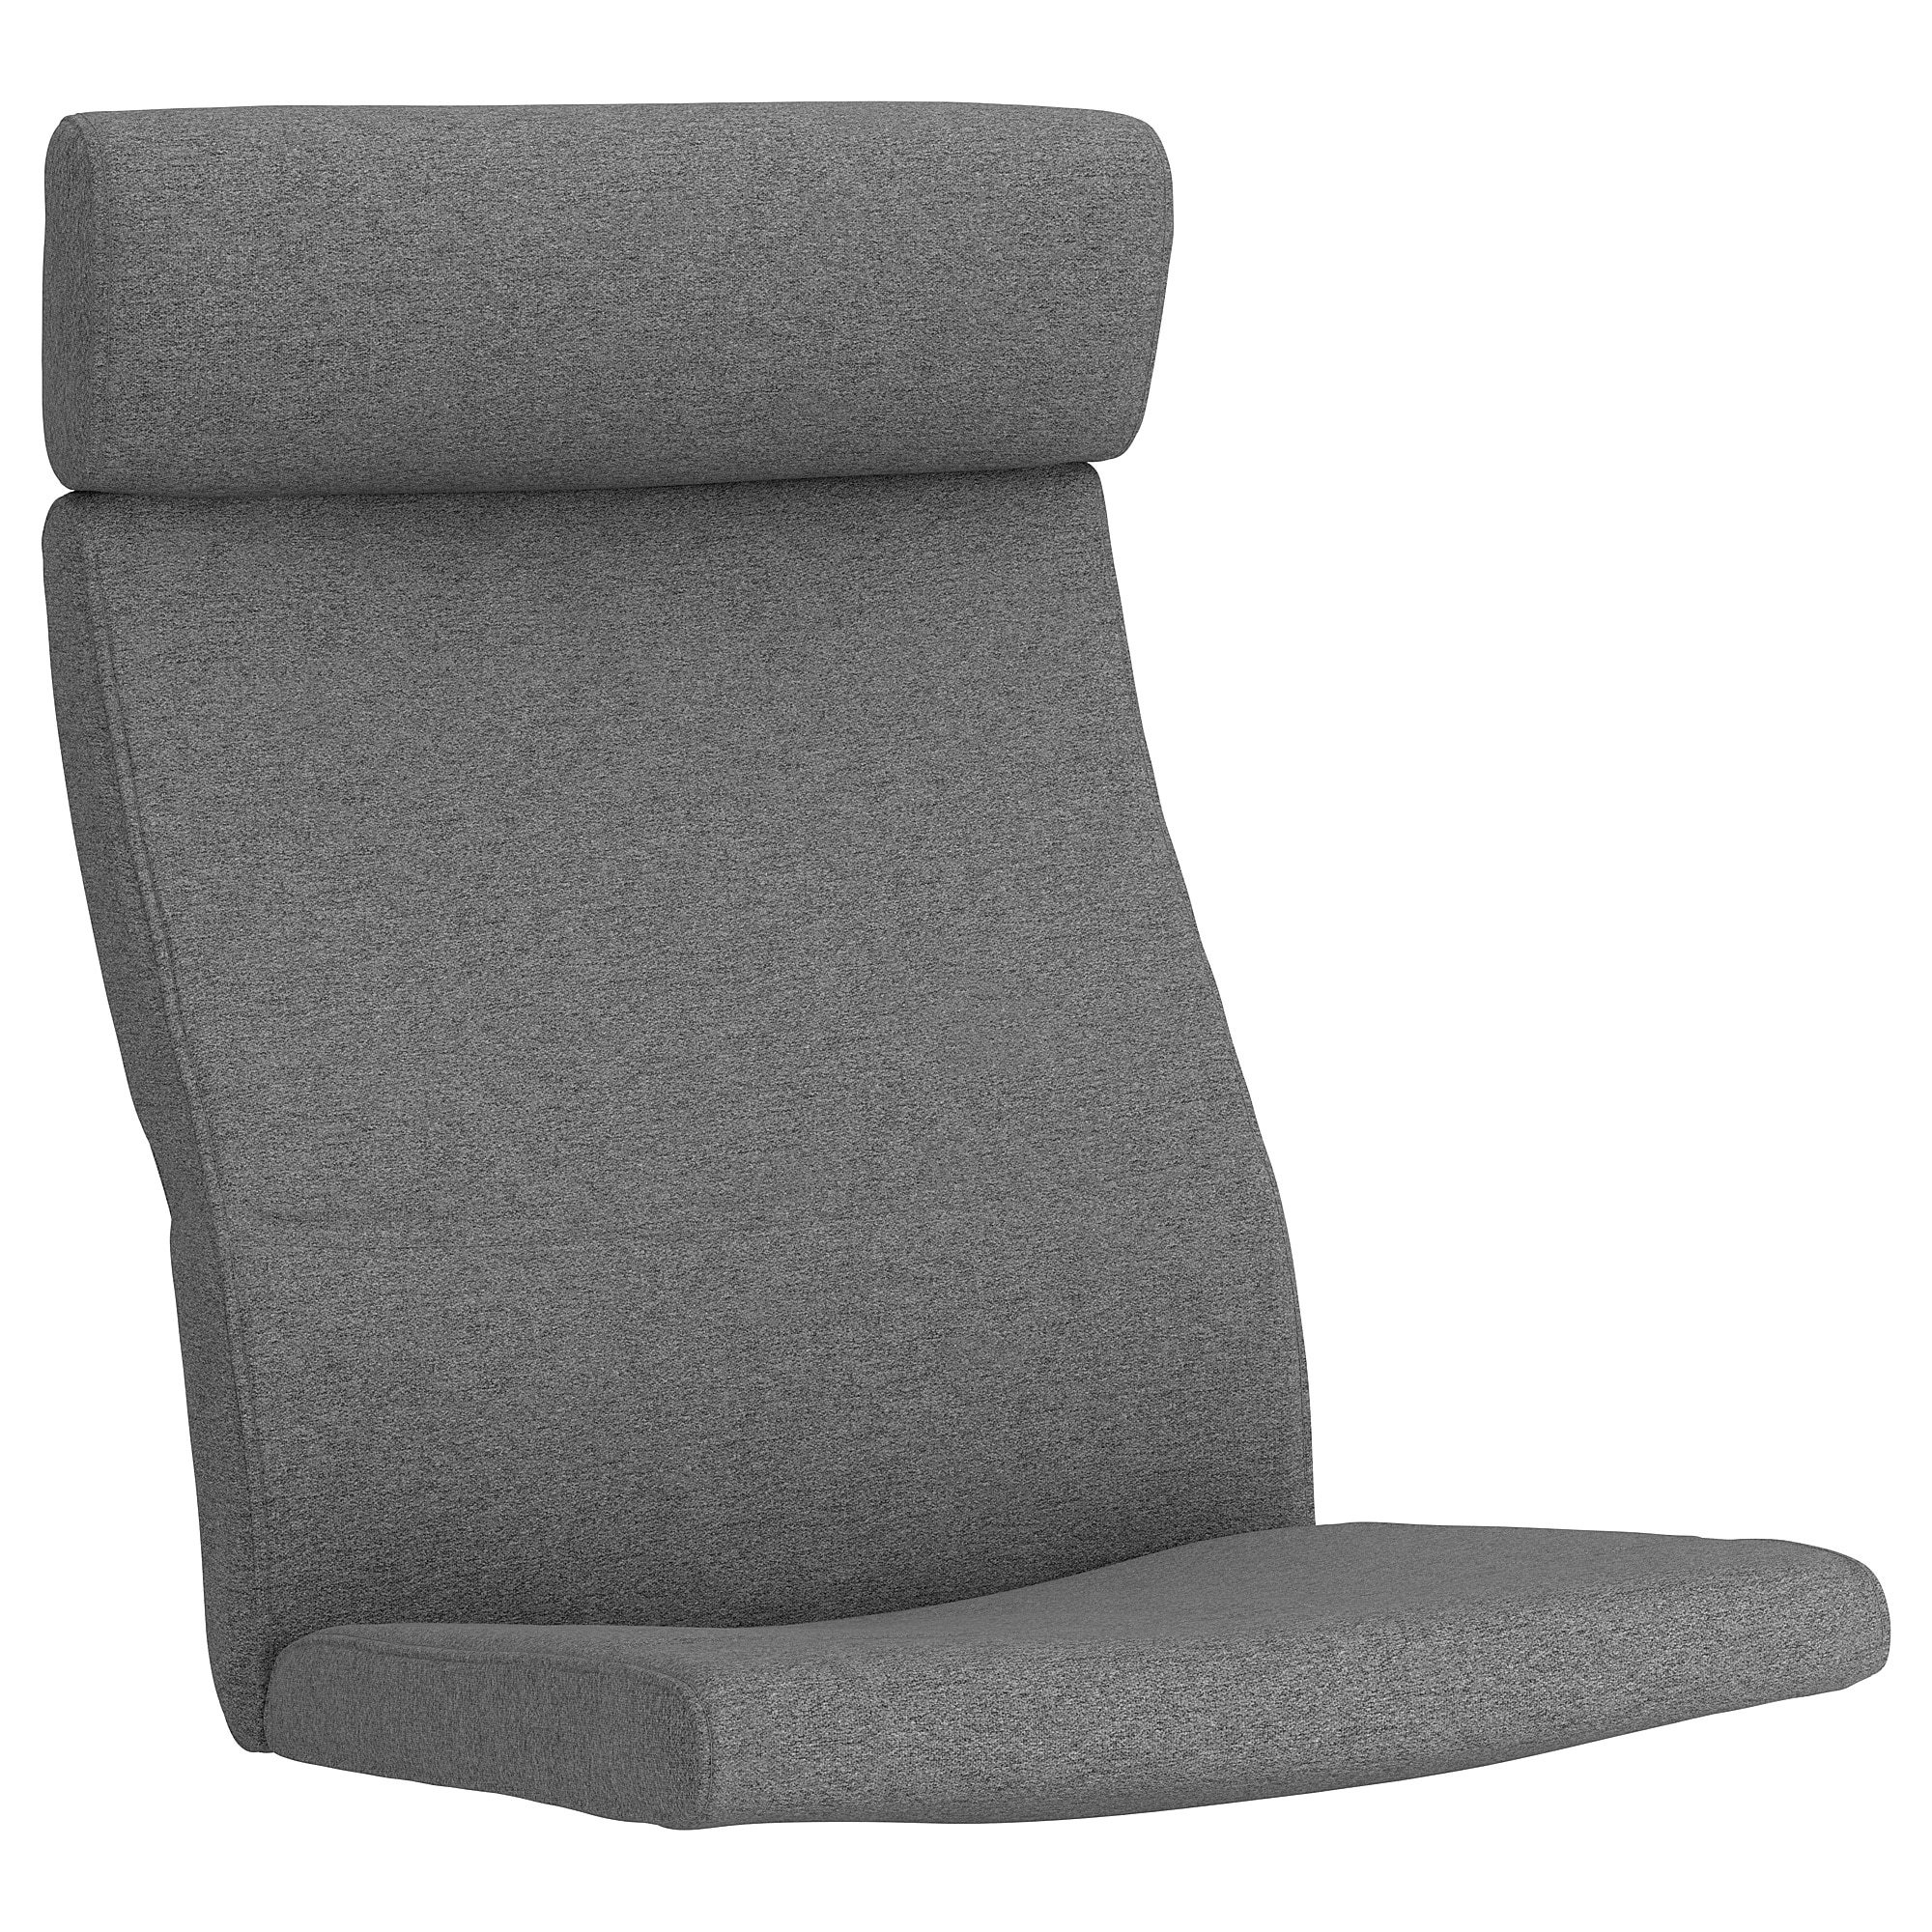 Sillon Poang D0dg Ikea Sillon Poang Colores Ikea Poang Slip Cover In Enchanted